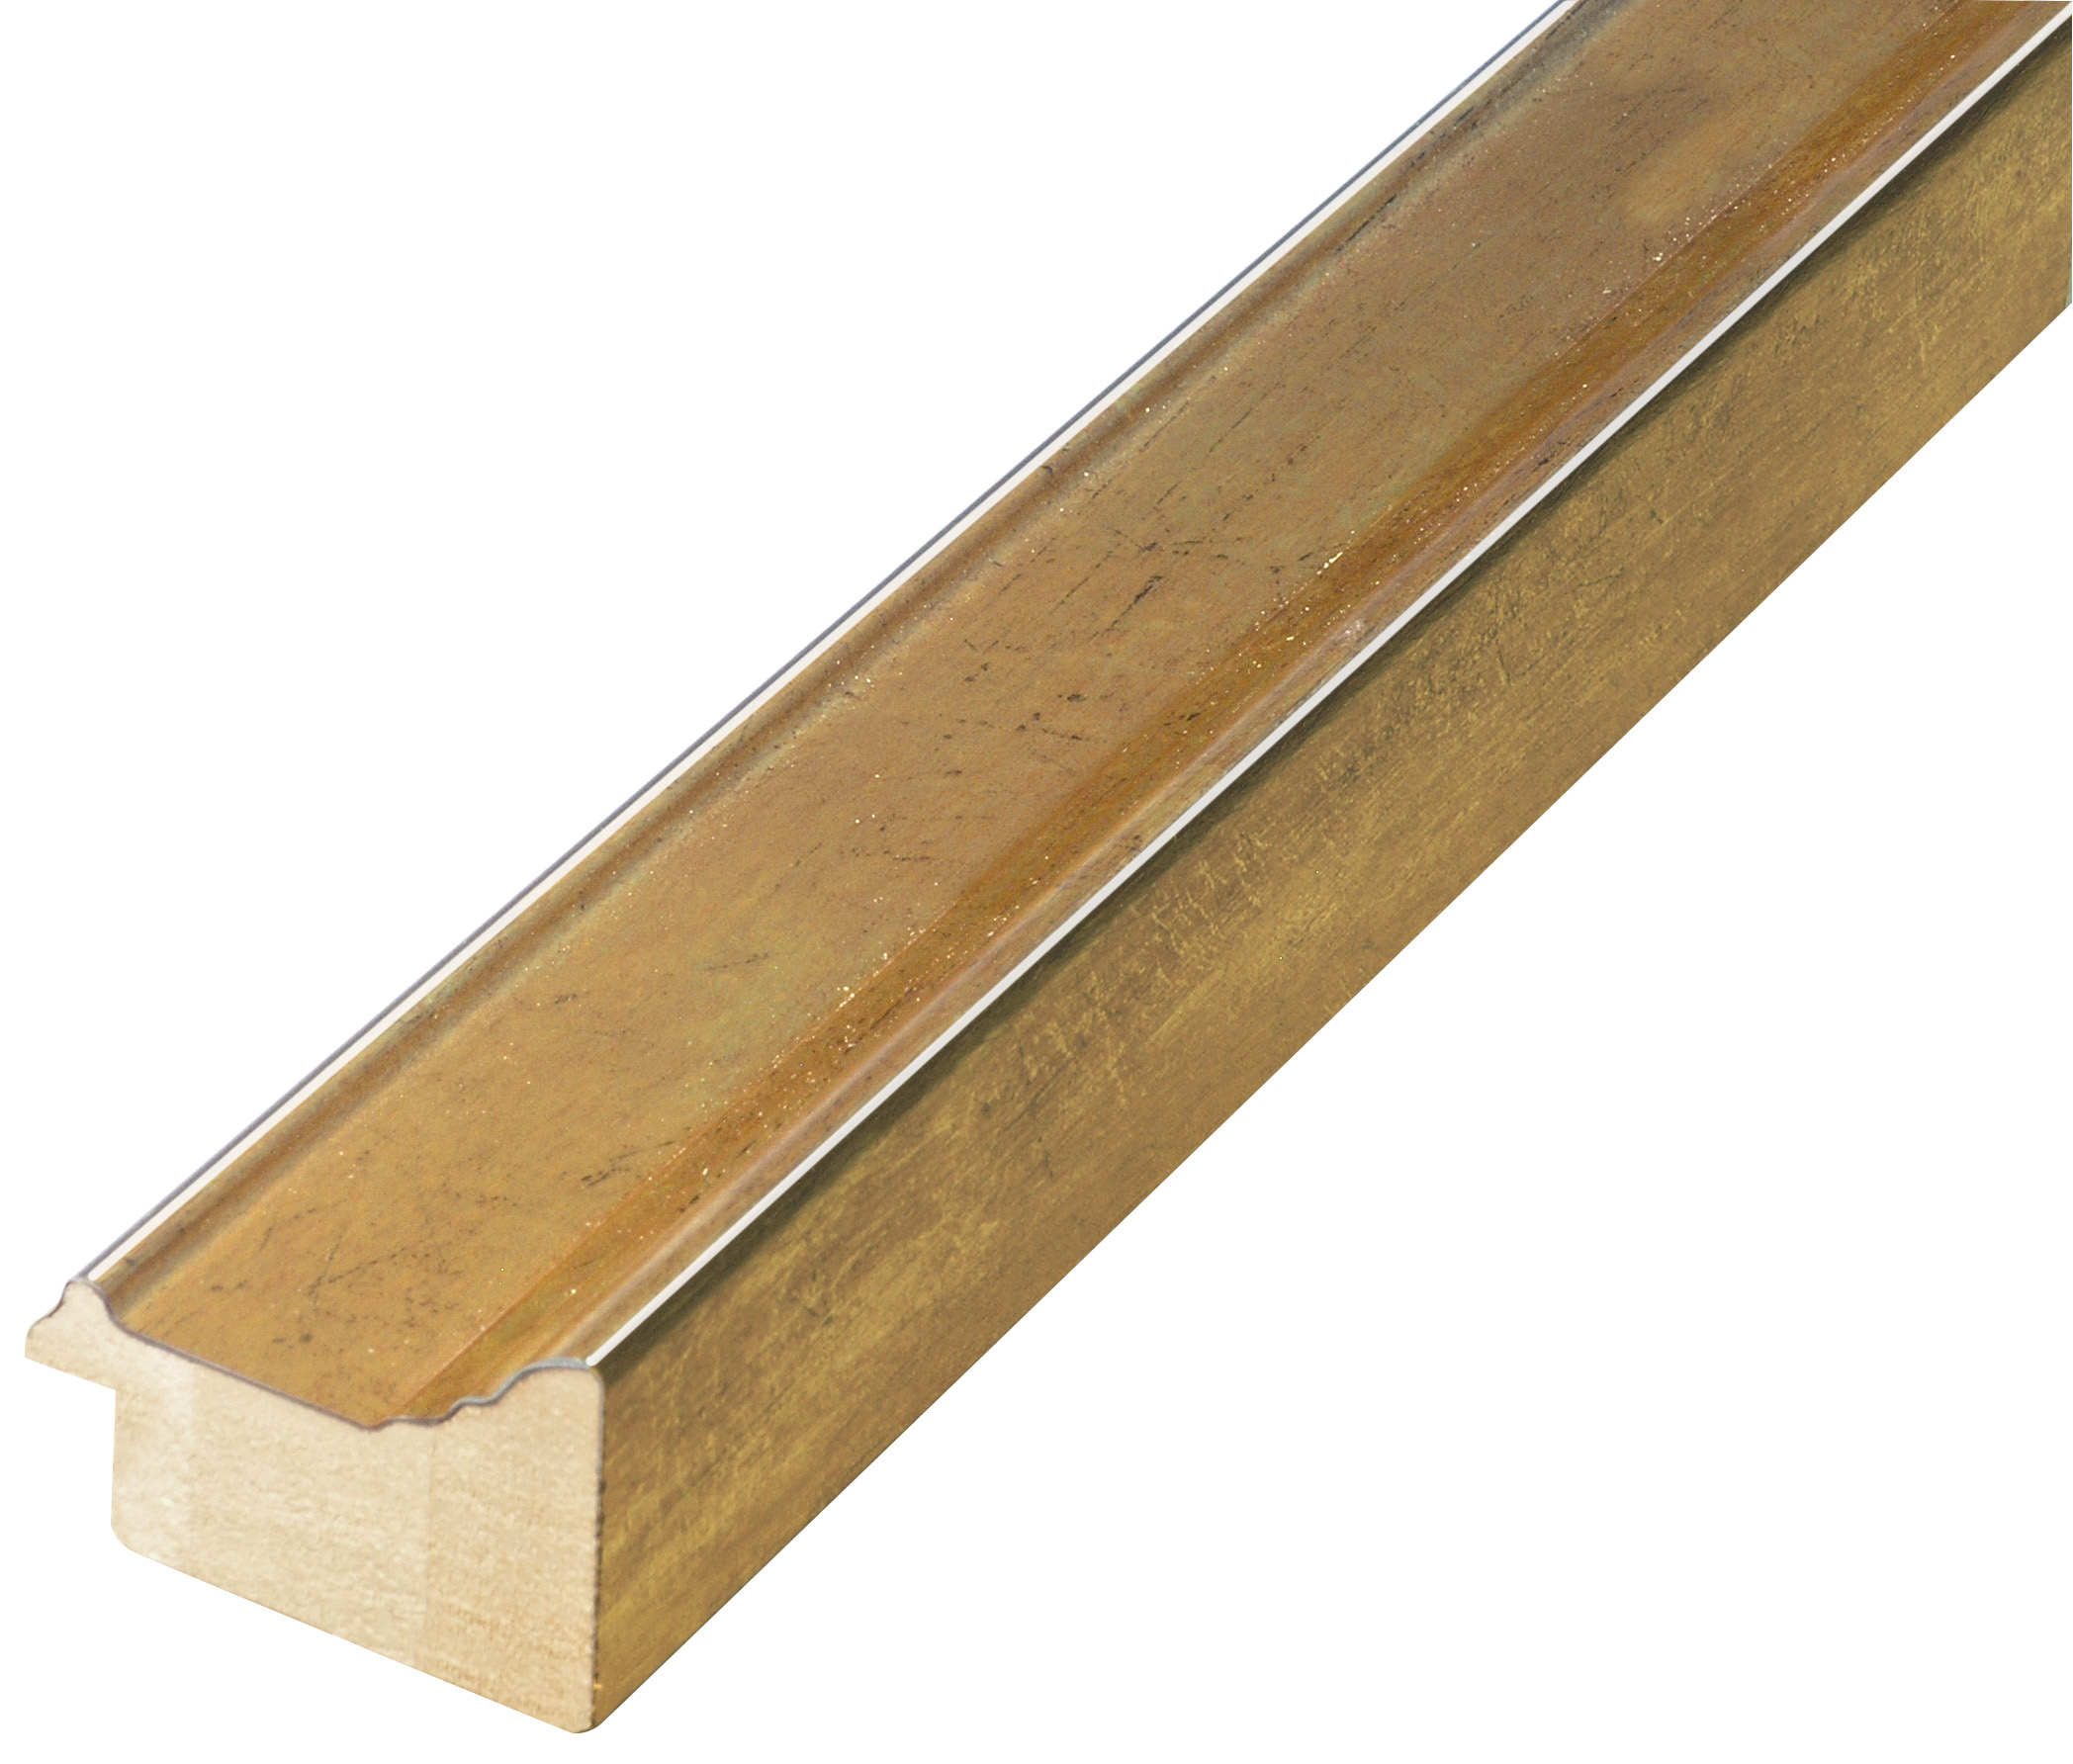 Moulding finger joint pine - width 42mm height 29 - gold